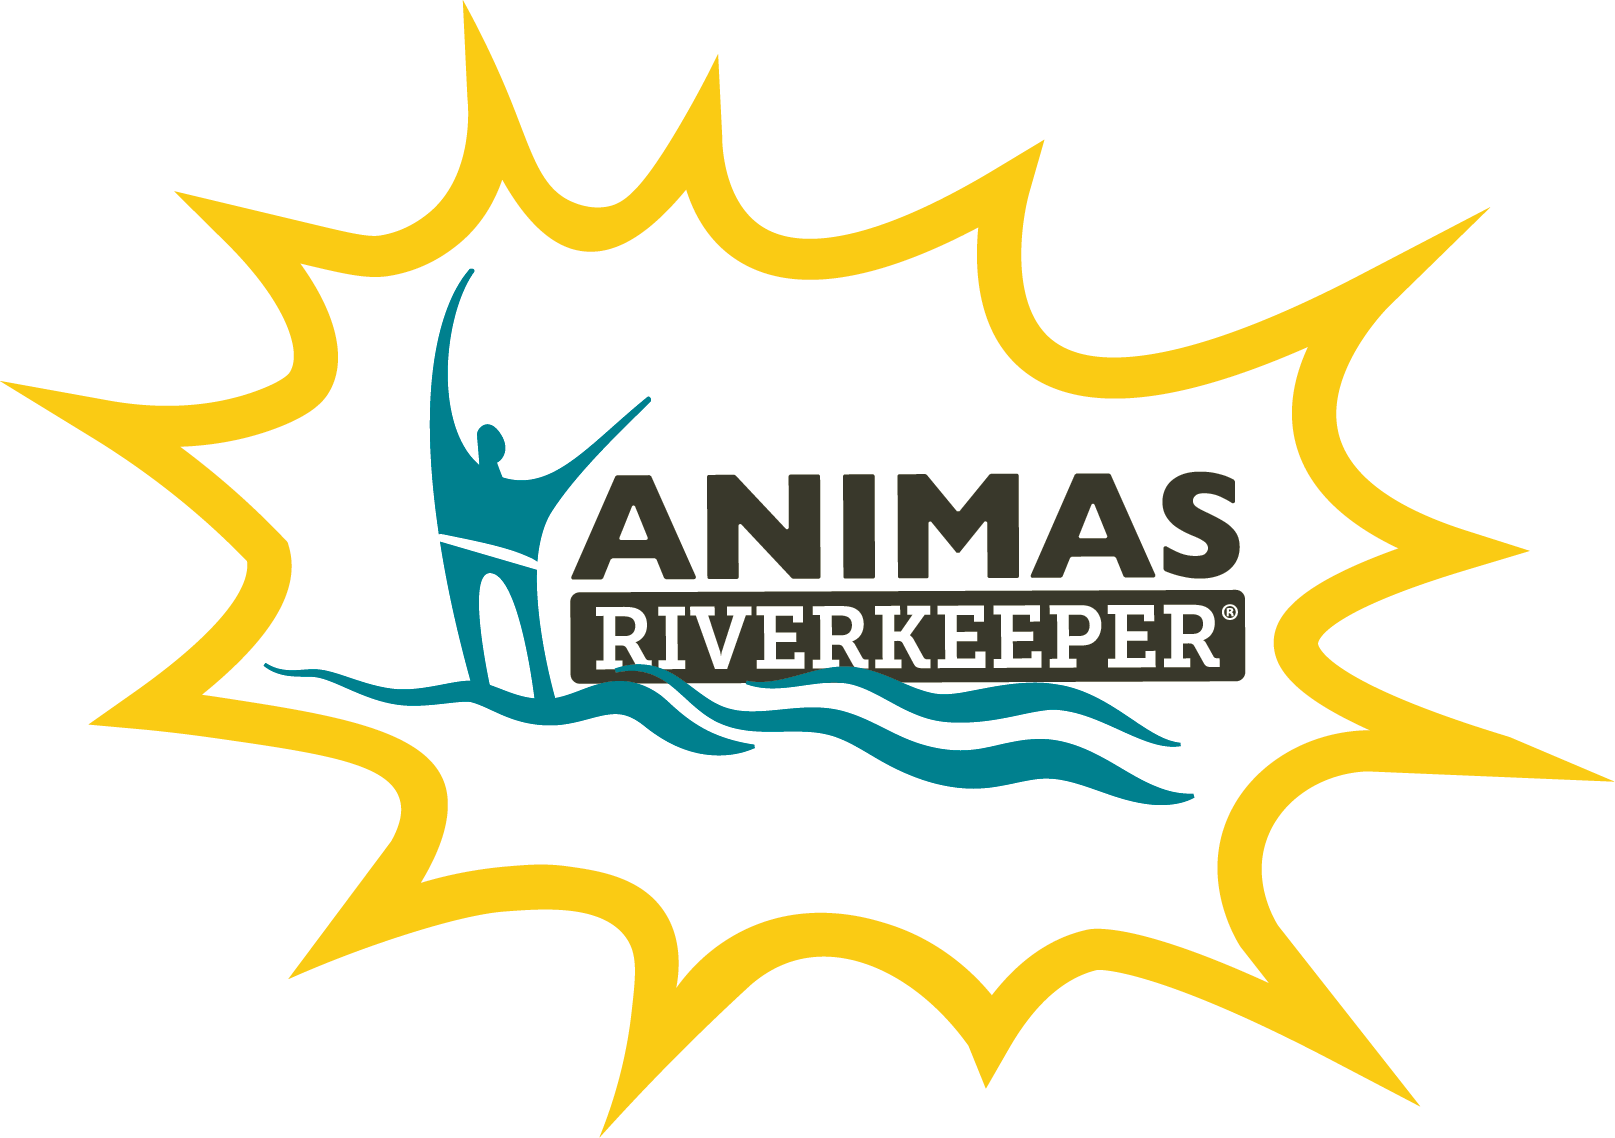 Animas Riverkeeper Blast logo